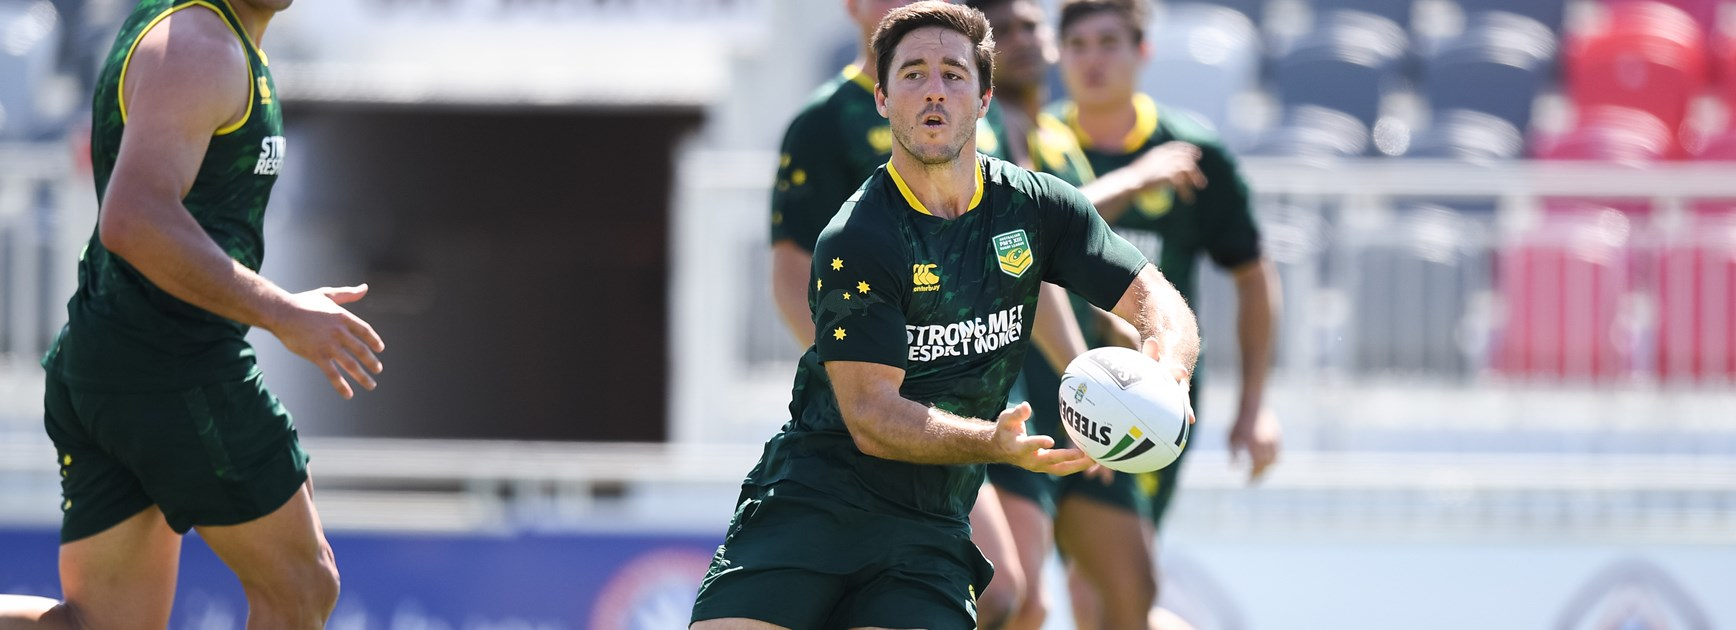 Hunt better equipped for NRL pressure after rollercoaster season